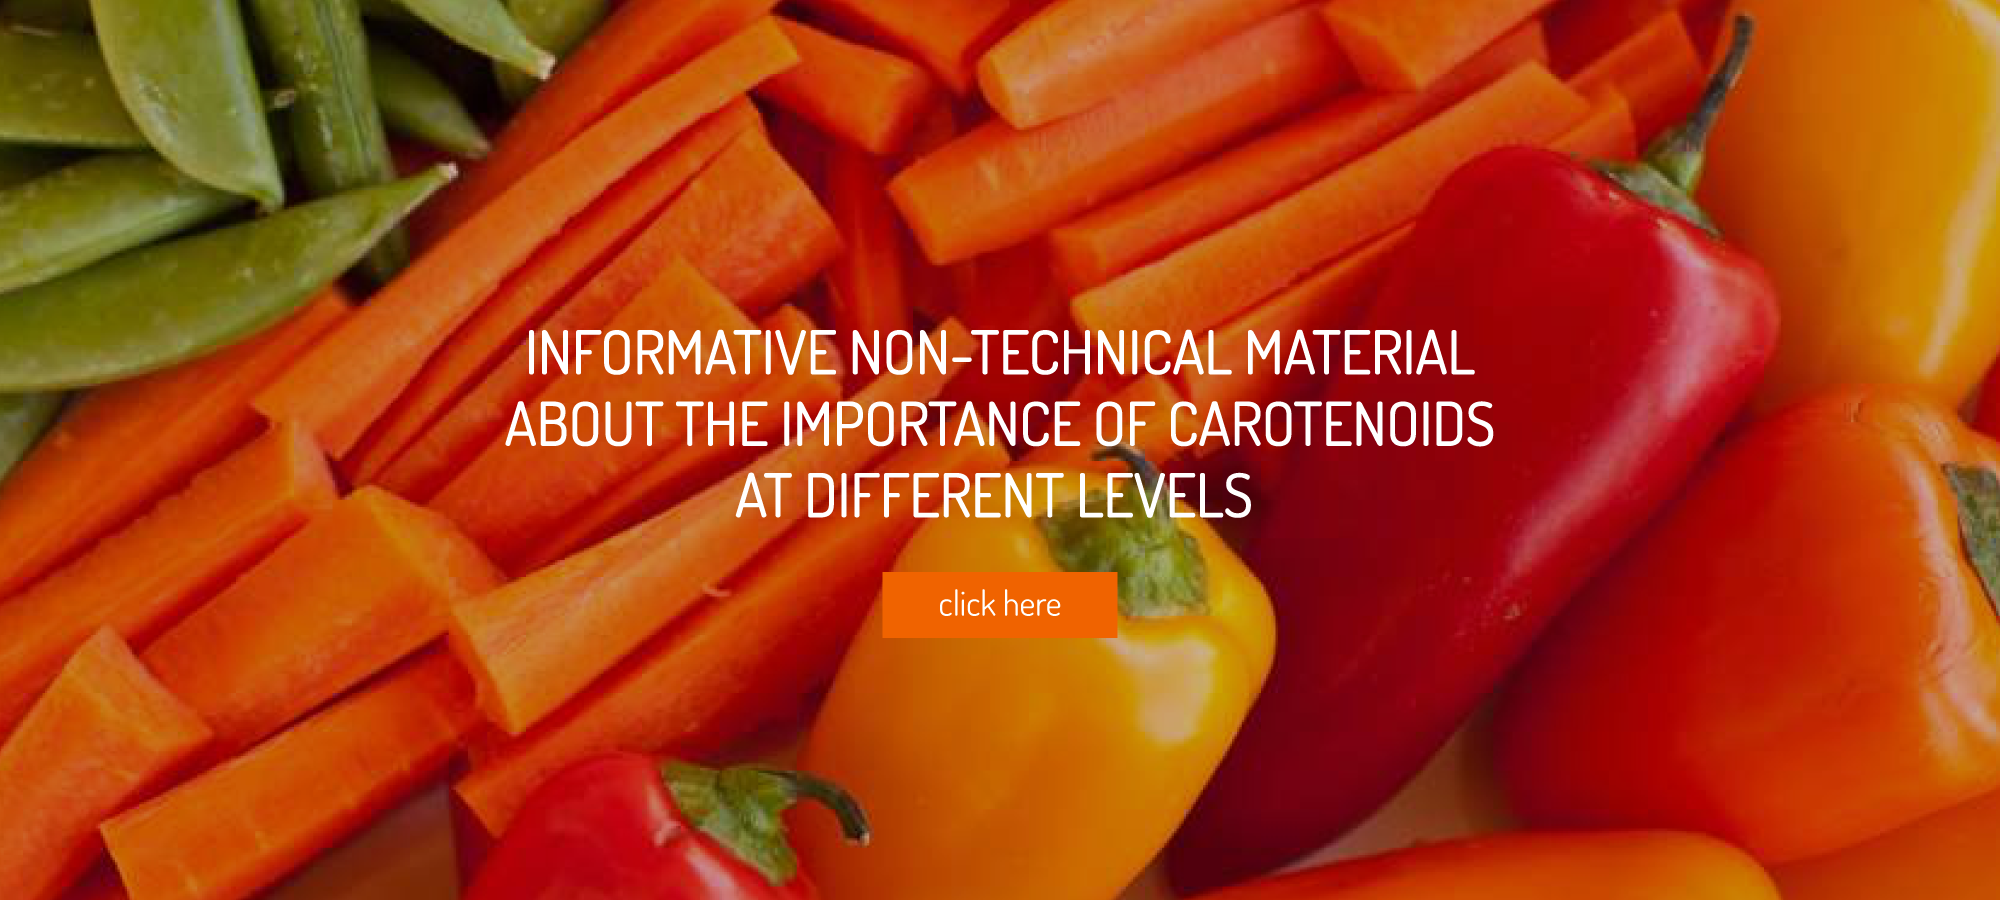 INFORMATIVE NON-TECHNICAL MATERIAL ABOUT THE IMPORTANCE OF CAROTENOIDS AT DIFFERENT LEVELS